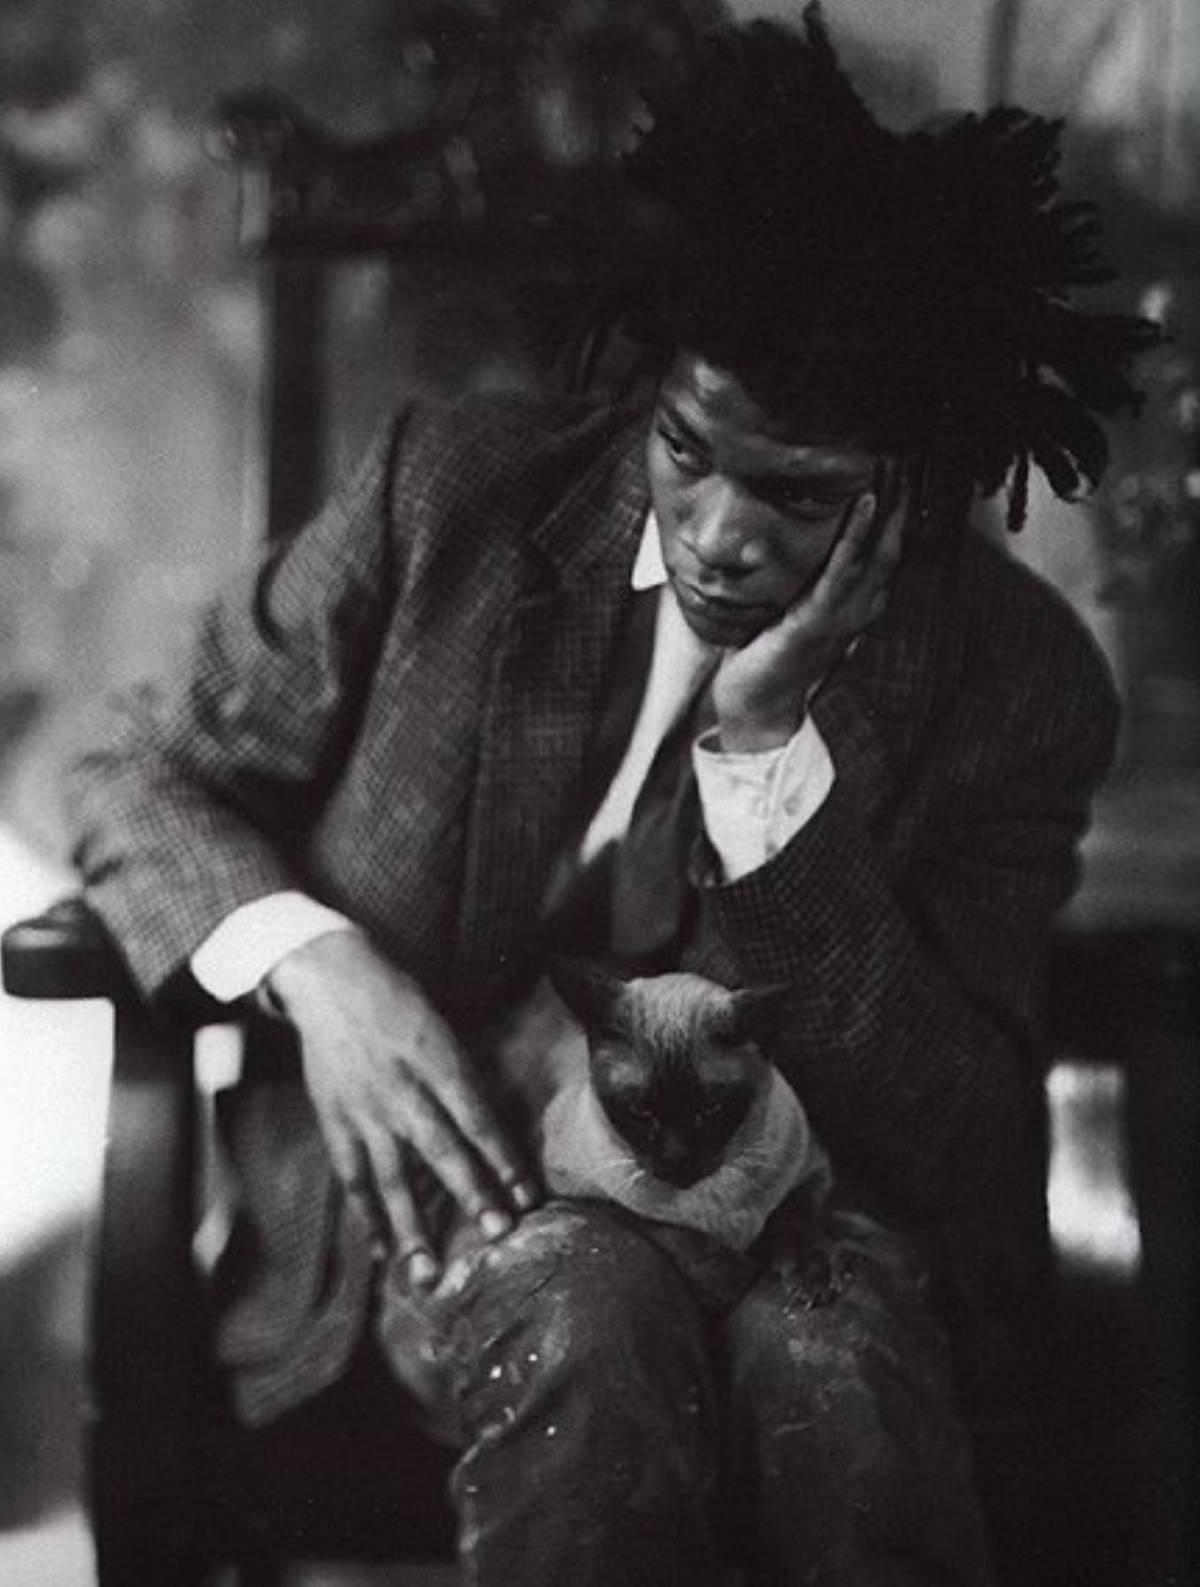 Jean-Michel Basquiat Vogue Kate Moss b&w fashion photography timeless inspo timeless lindbergh newton avedon demarchelier meisel Alaia Chanel